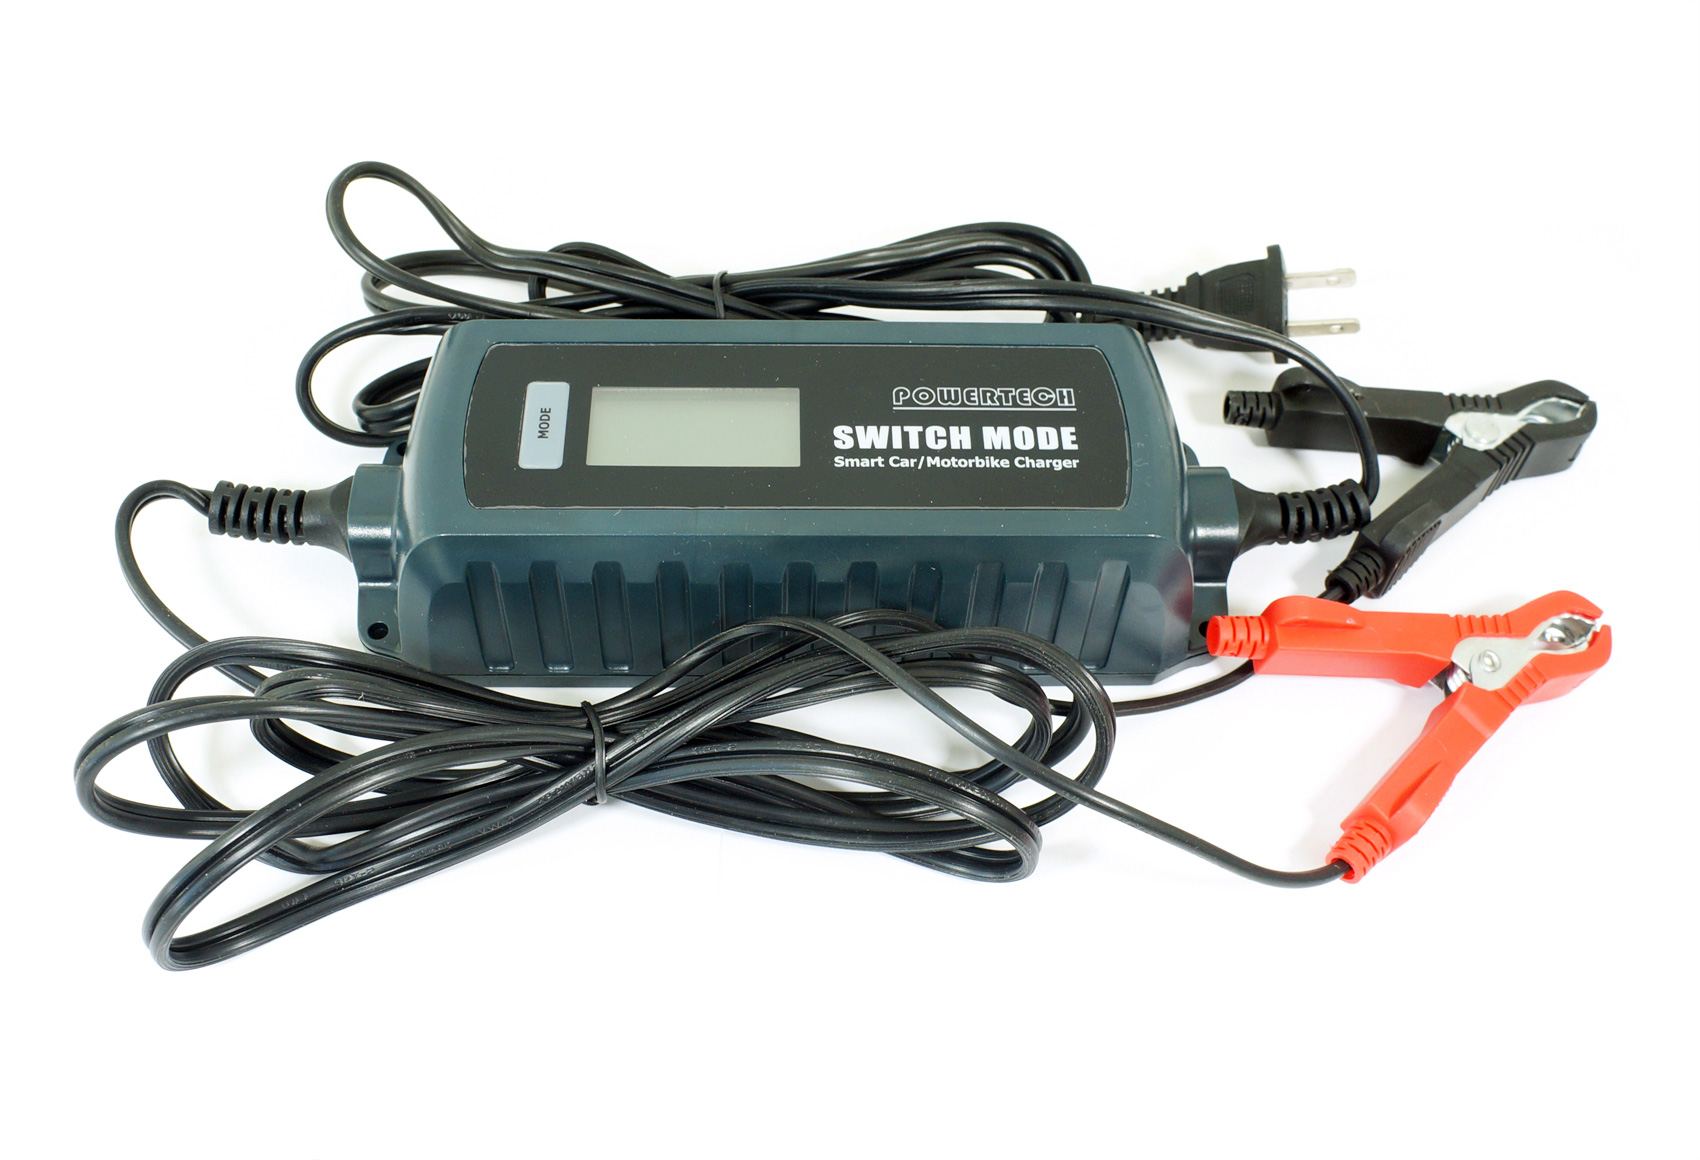 Battery Tender Quick Disconnect Plug With LCD Voltage Display Monitor 081-0157